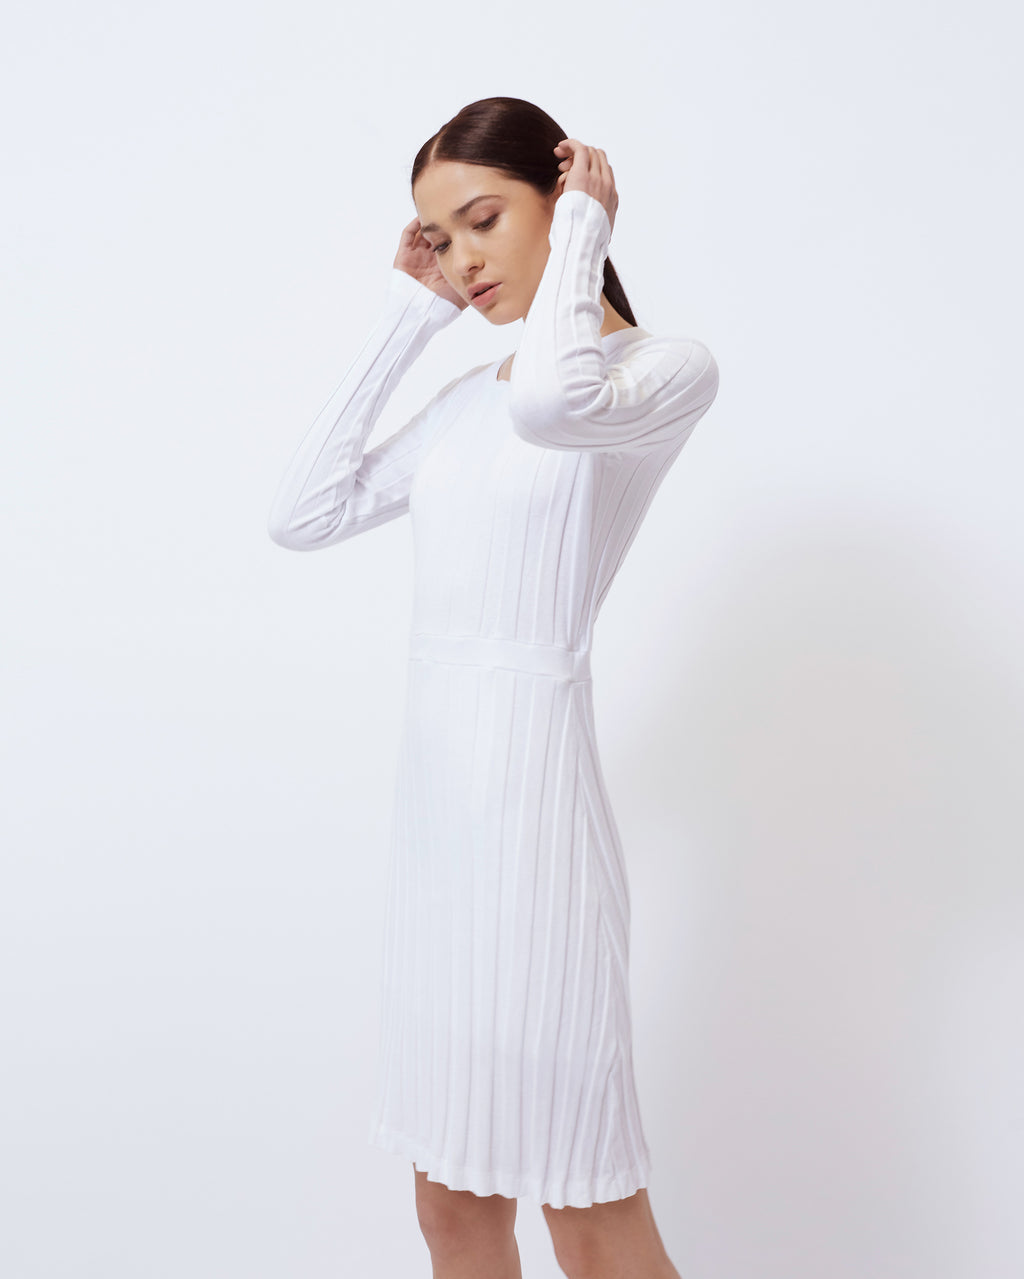 The Ora Dress in Optic White